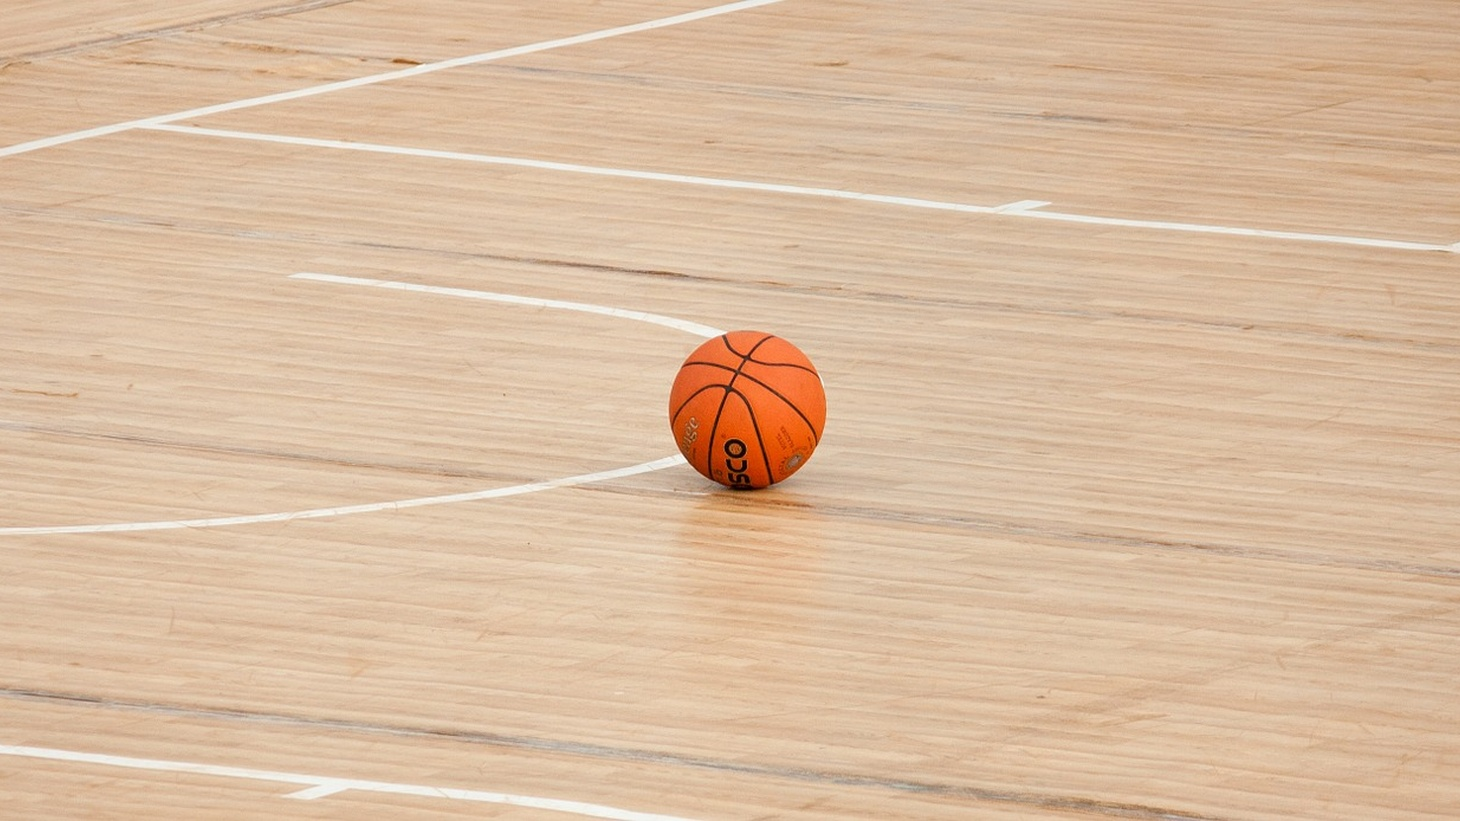 A lone basketball on the court.